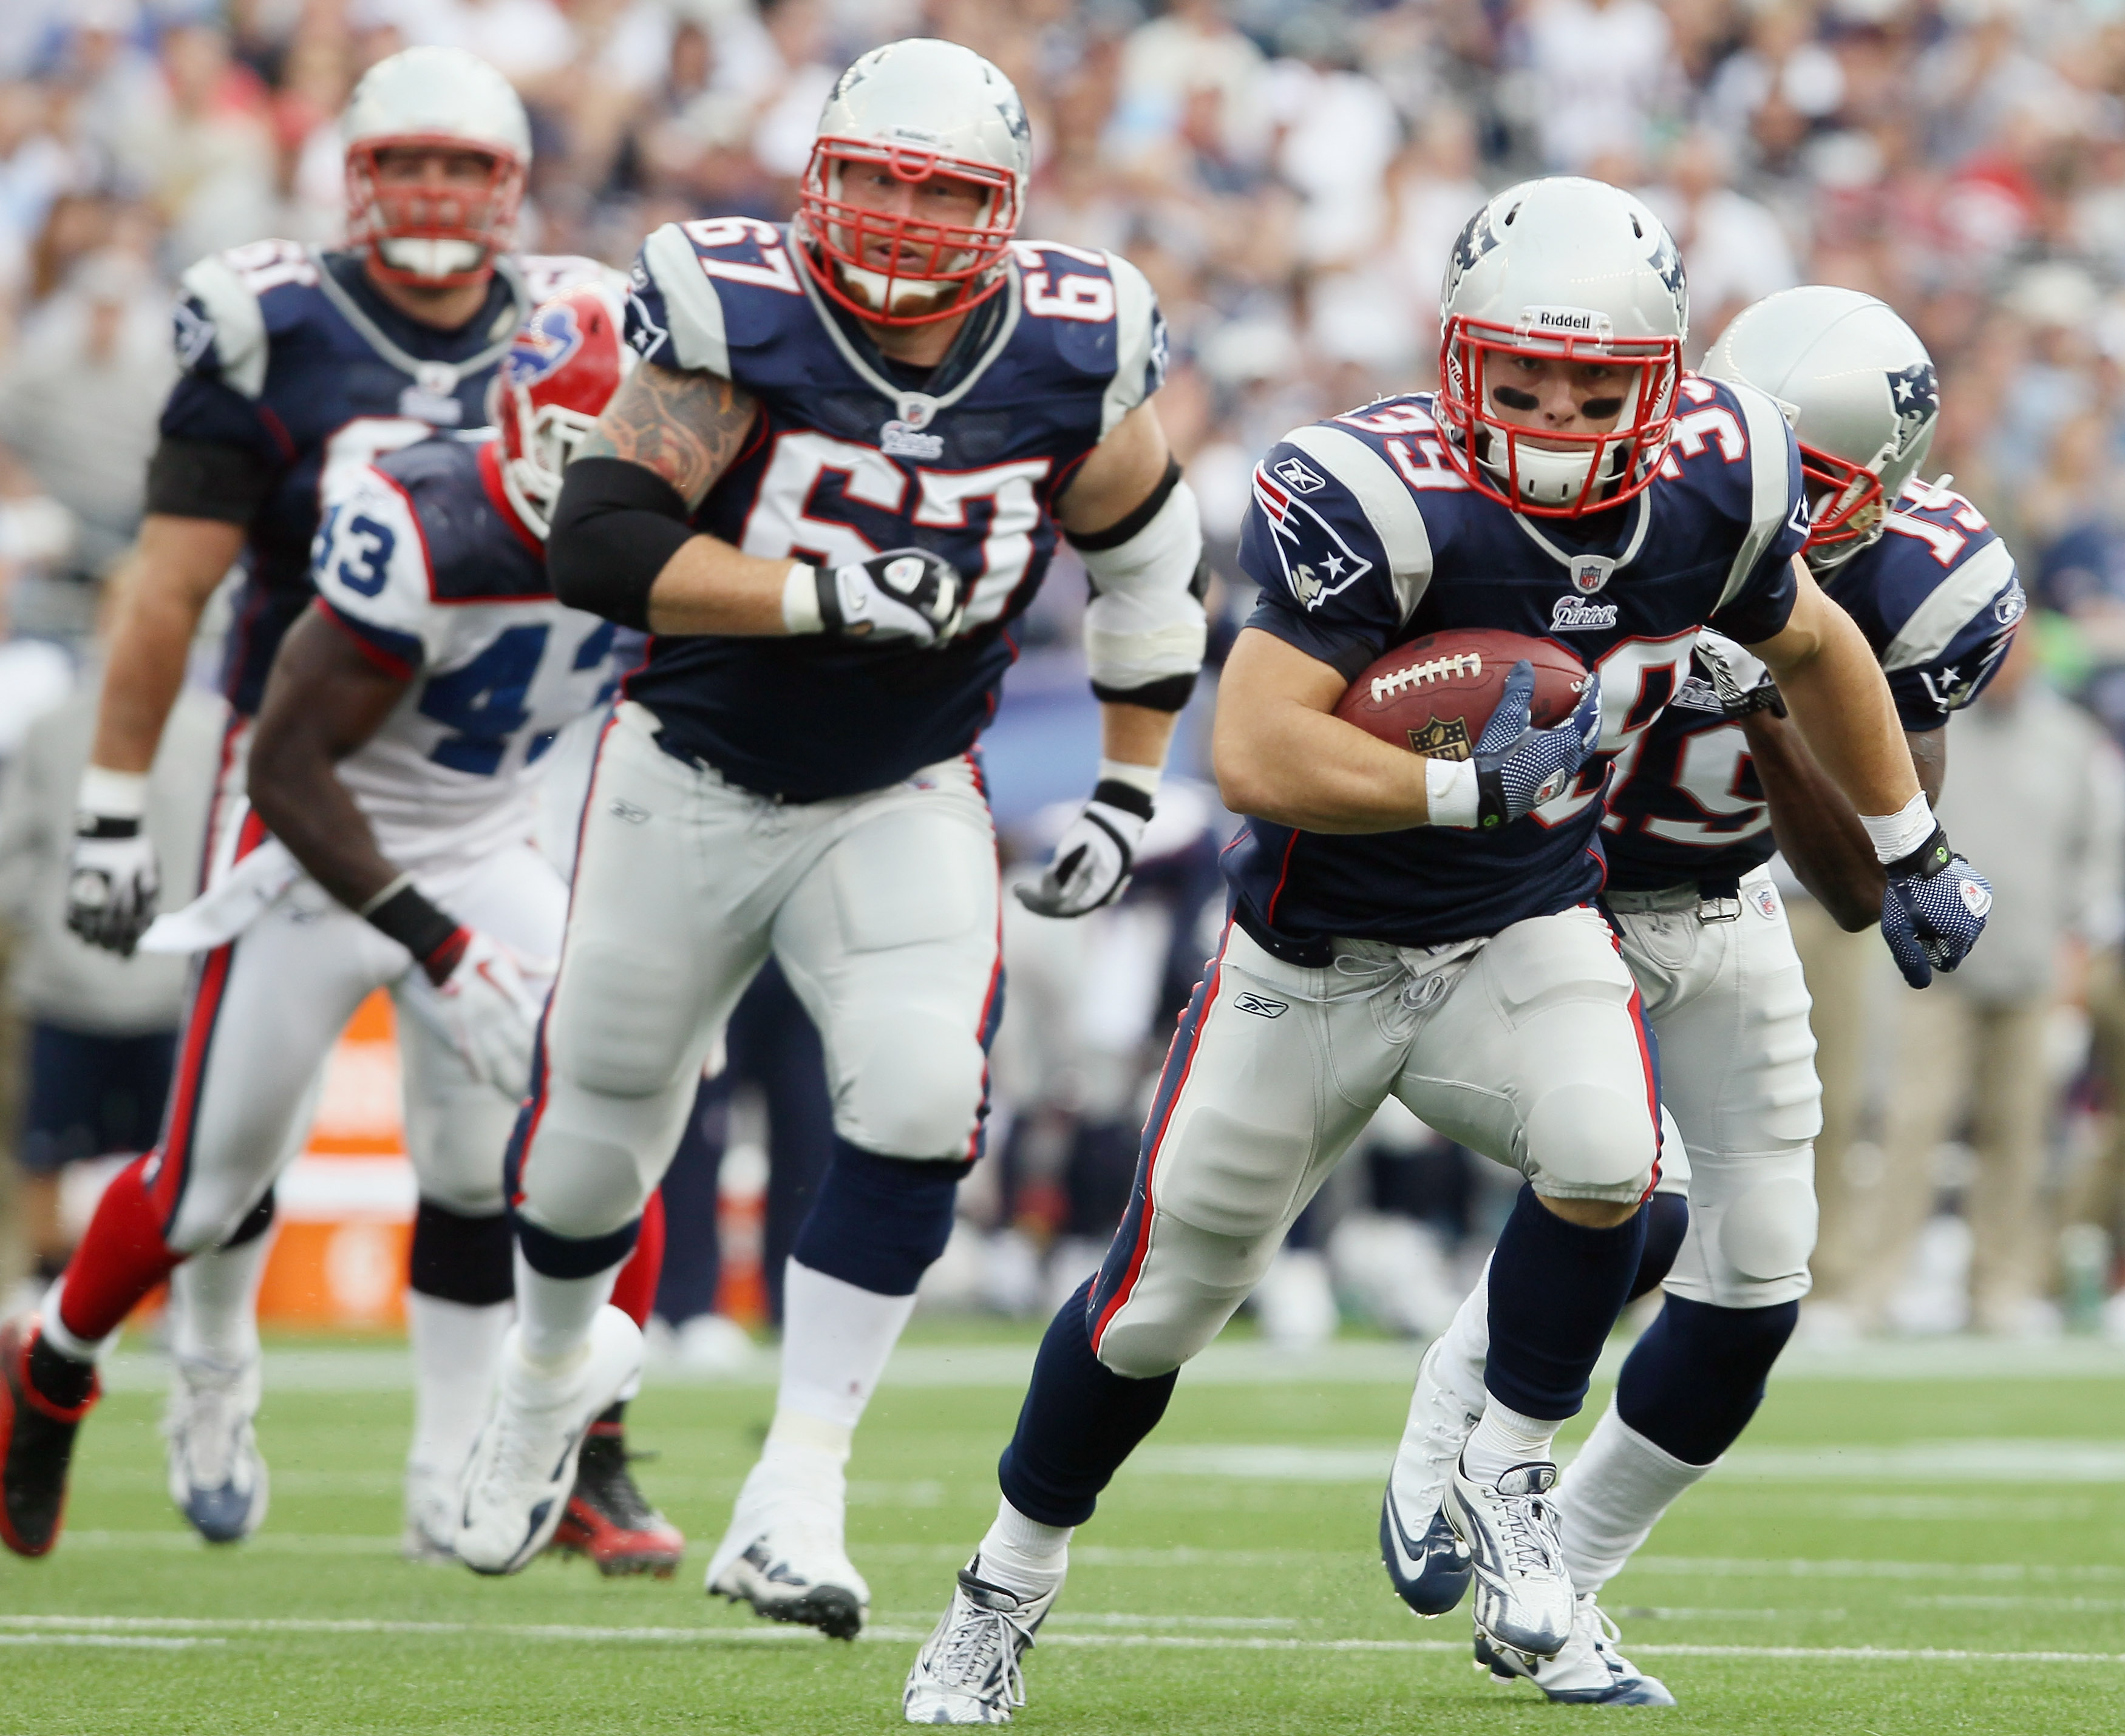 FOXBORO, MA - SEPTEMBER 26:  Danny Woodhead #39 of the New England Patriots carries the ball in for a touchdown as teammate Dan Koppen #67 follows in the second quarter against the Buffalo Bills during on September 26, 2010 at Gillette Stadium in Foxboro,